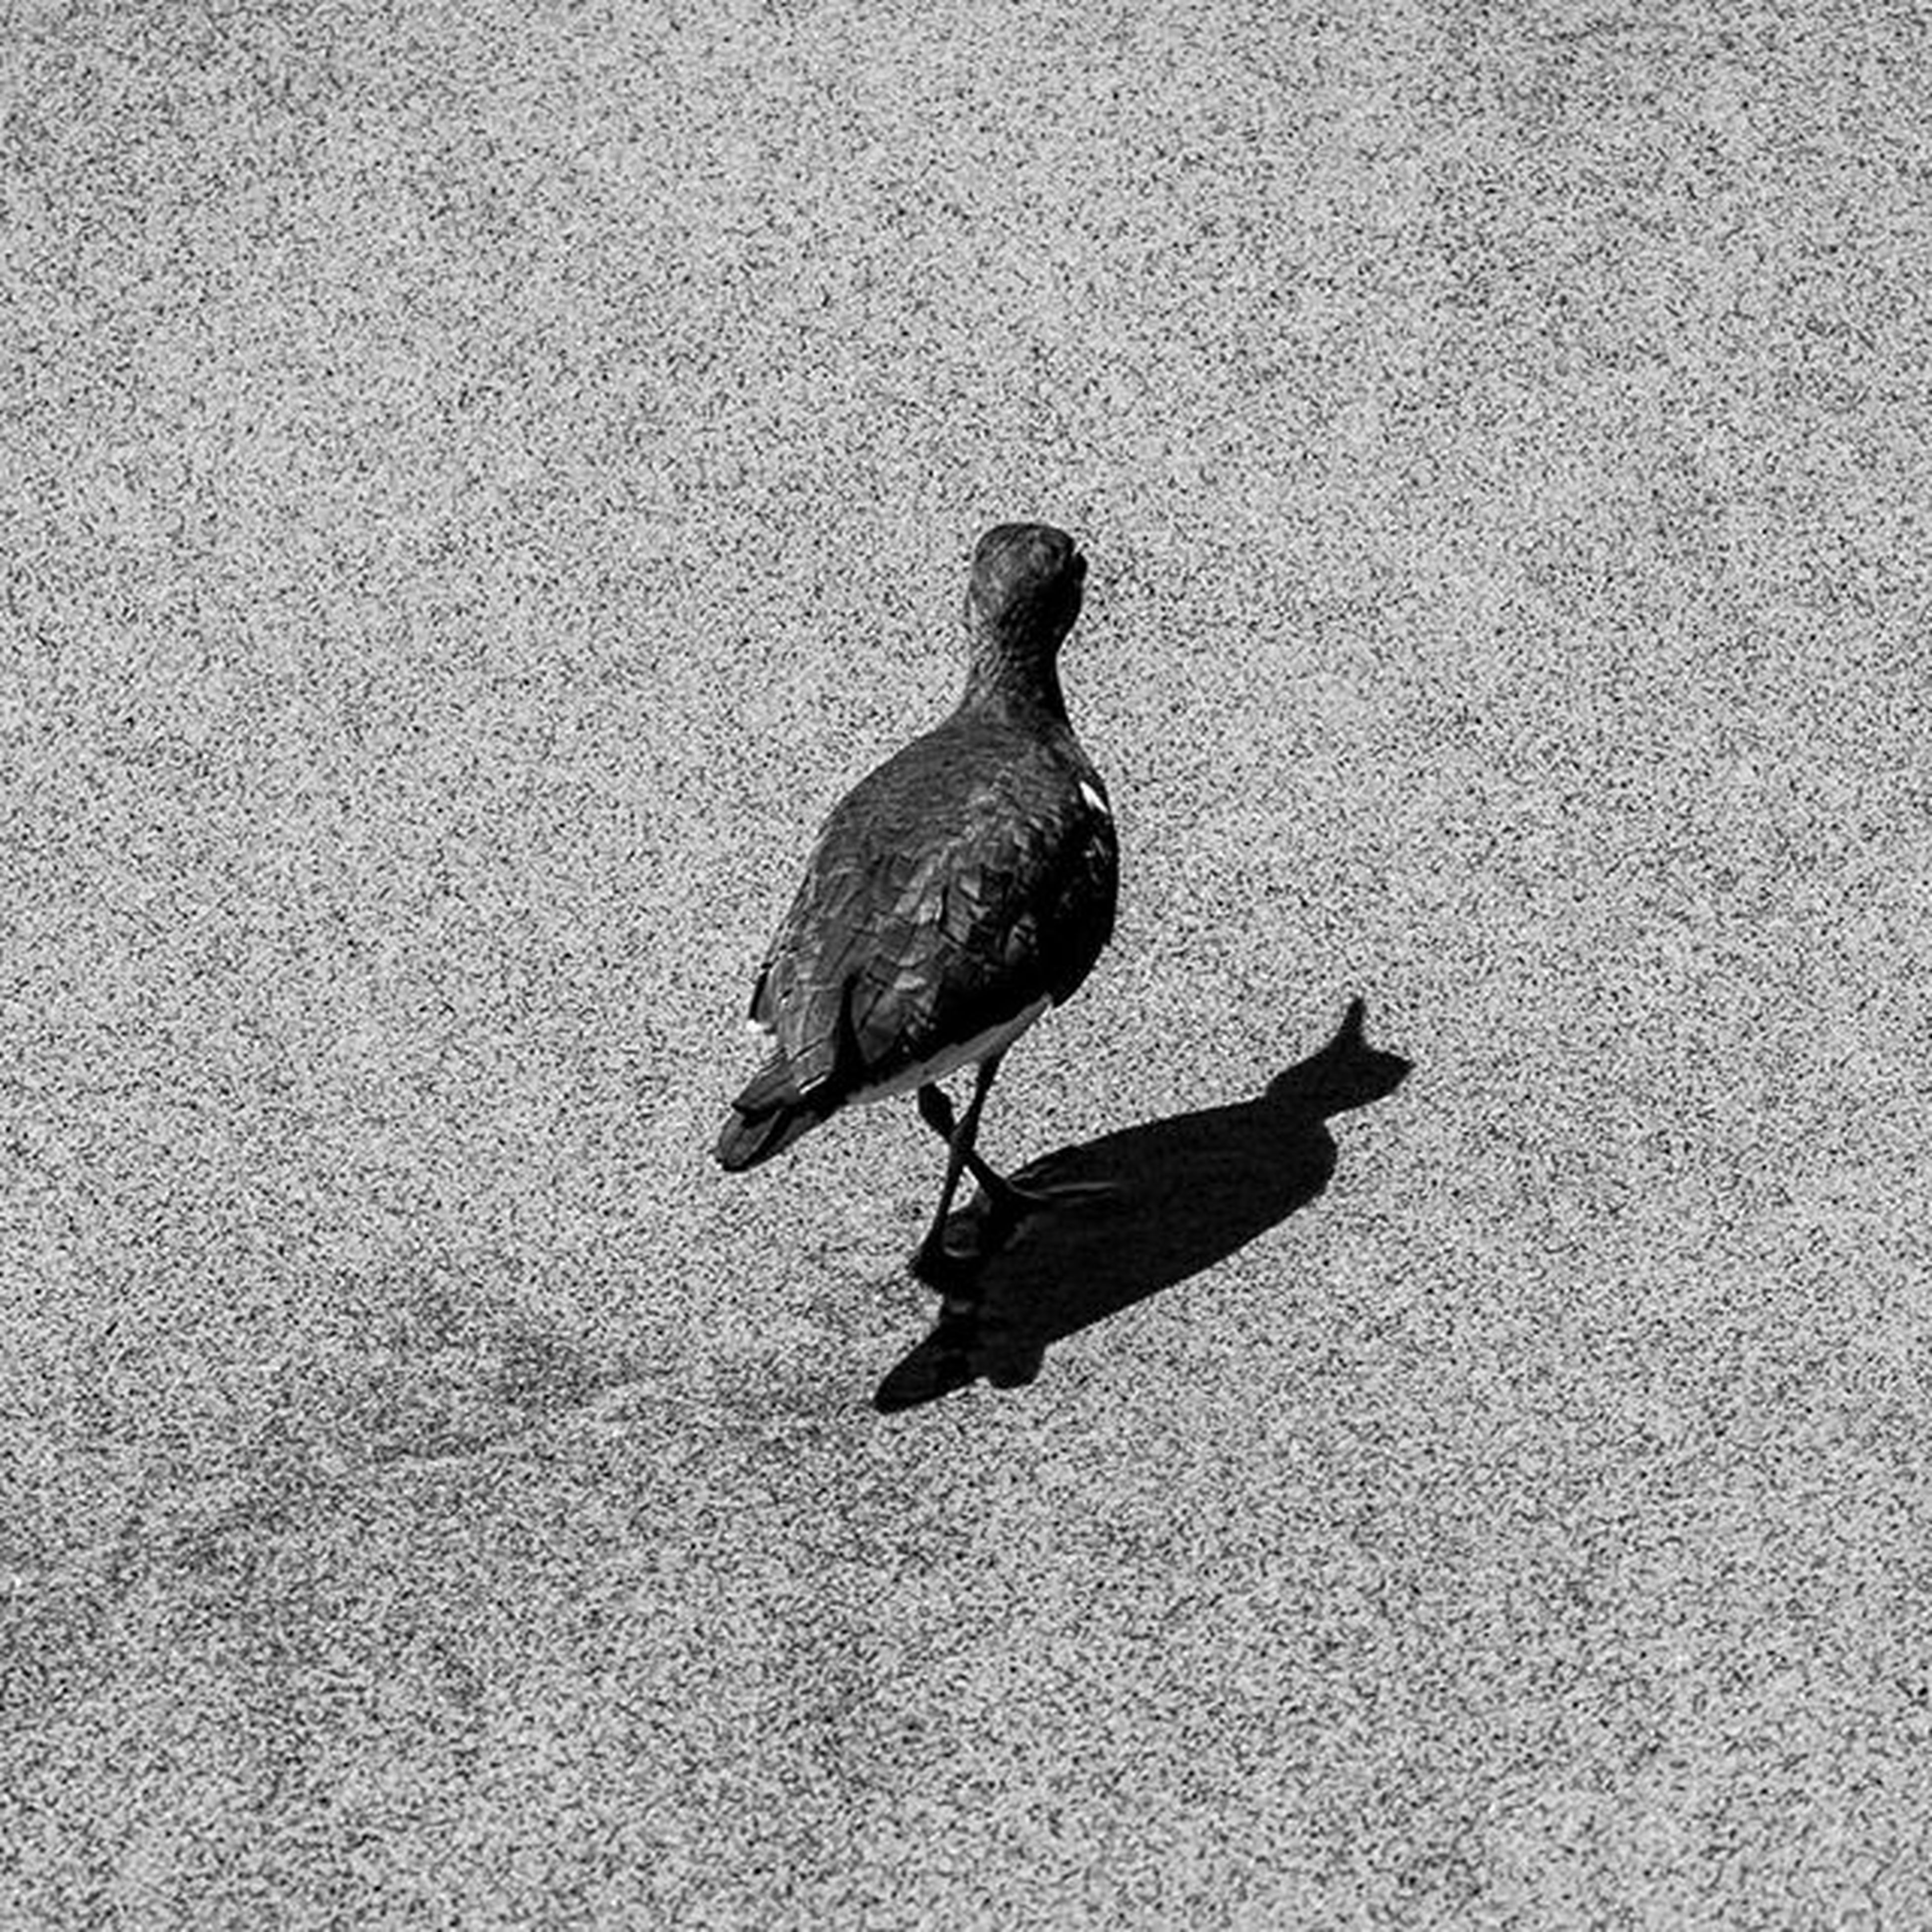 animal themes, one animal, bird, animals in the wild, wildlife, high angle view, full length, street, side view, outdoors, day, pigeon, shadow, no people, sunlight, nature, perching, walking, road, asphalt